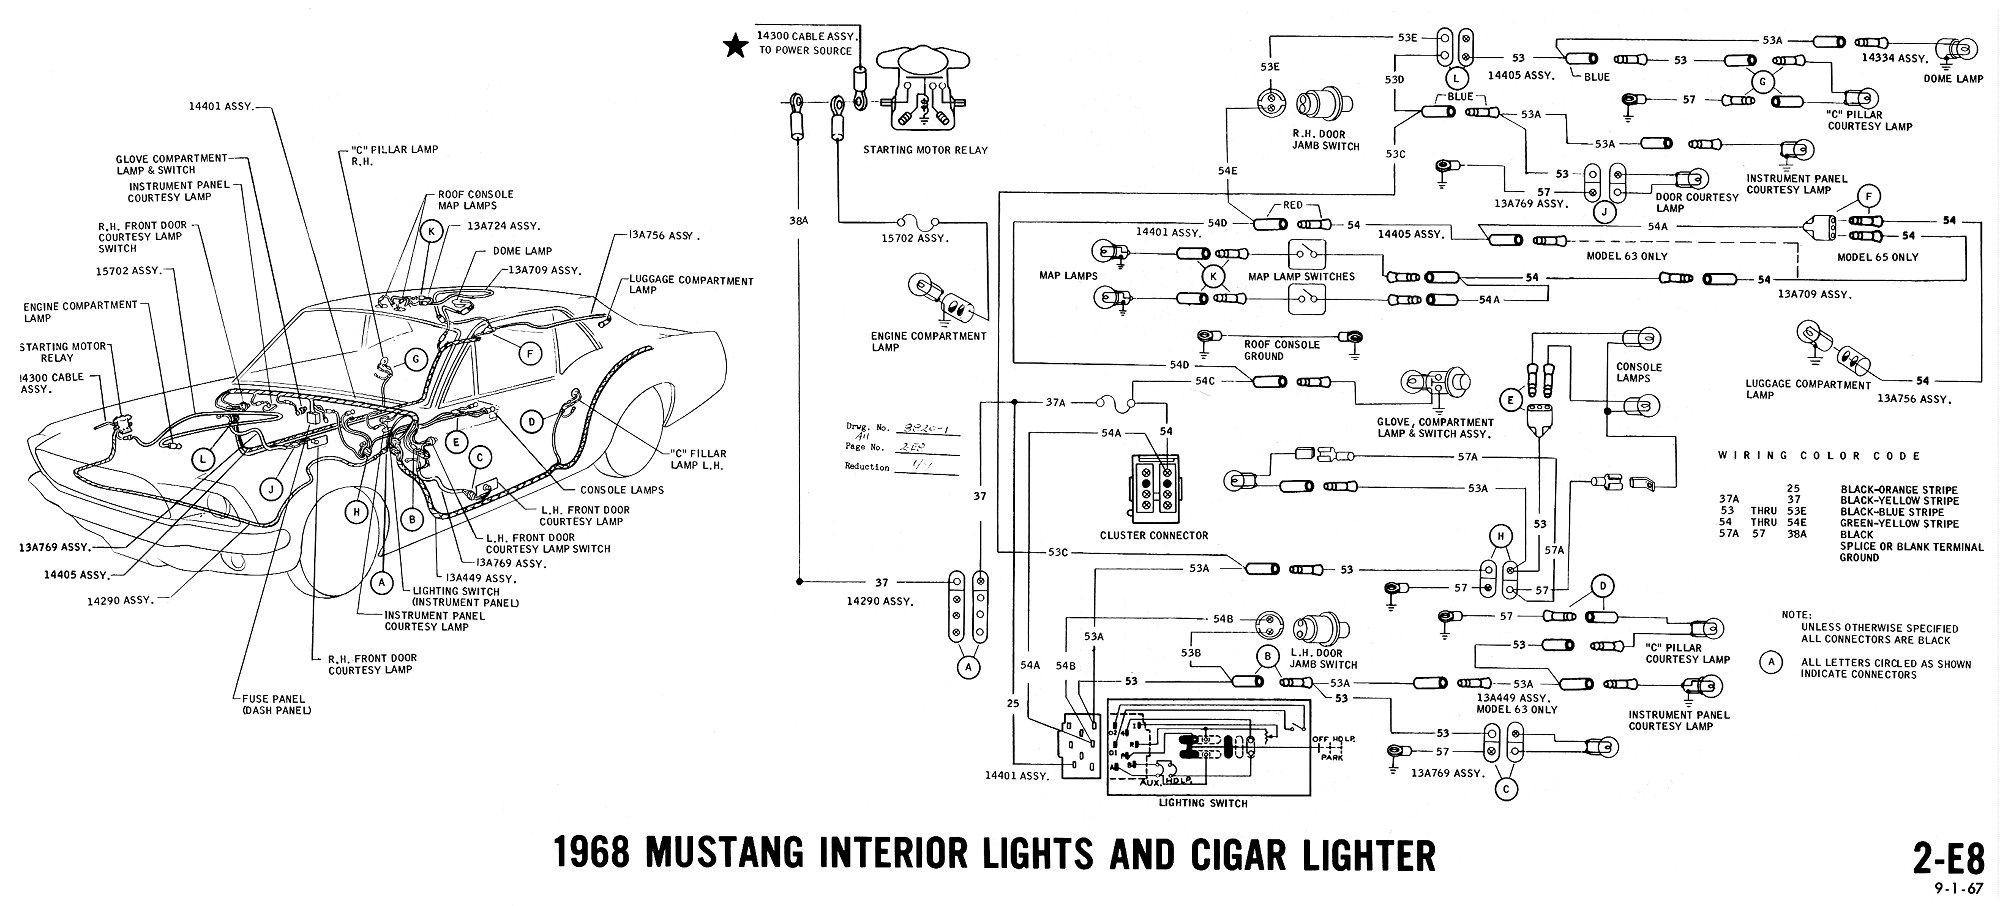 1968 Mustang Fuse Panel Diagram Wiring Libraries Box For 86 Radio Todays1968 Ford Schematic Diagrams 1986